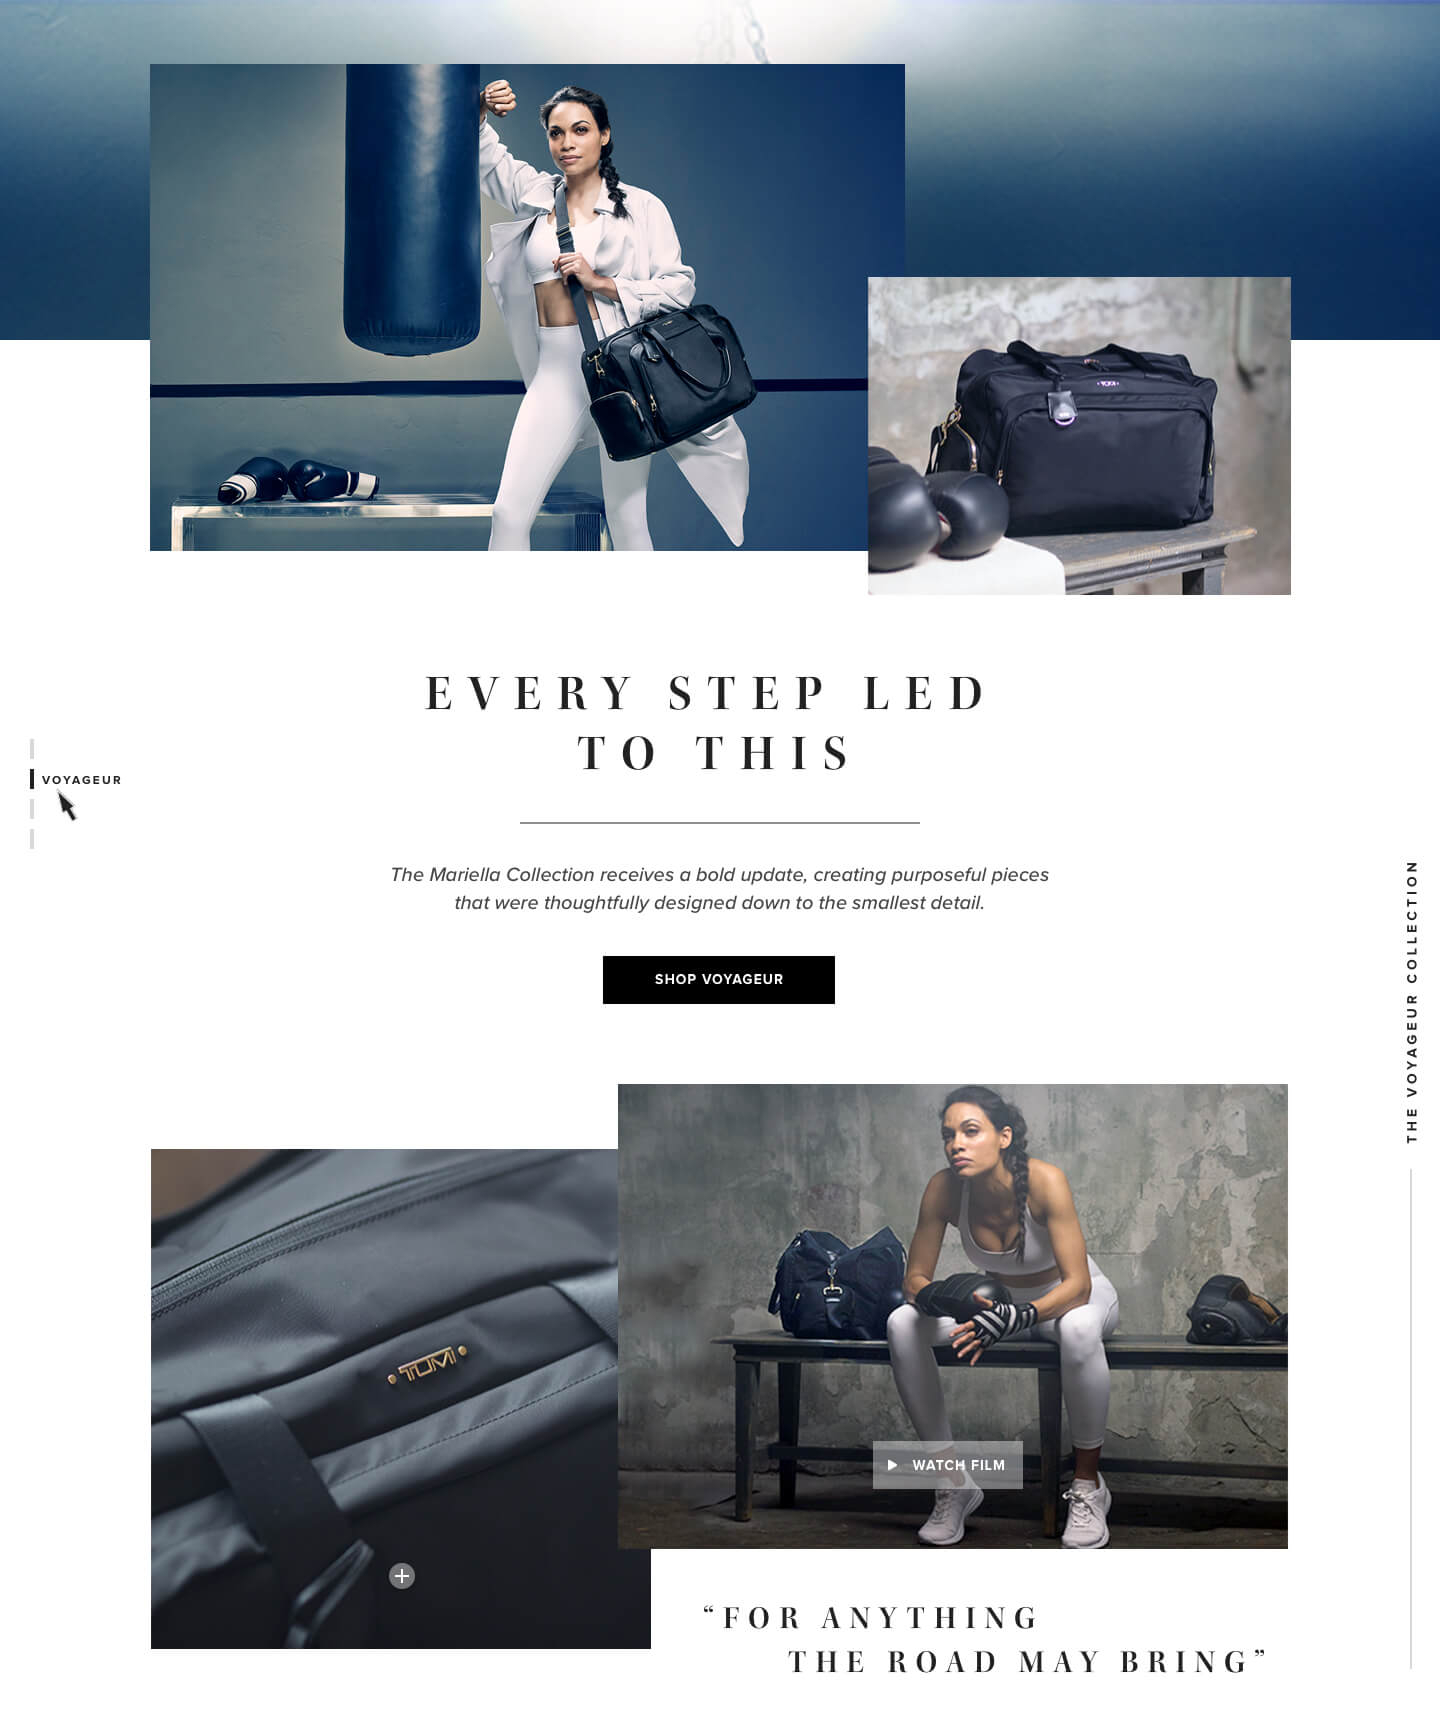 A collection landing page for the Tumi Women's collection